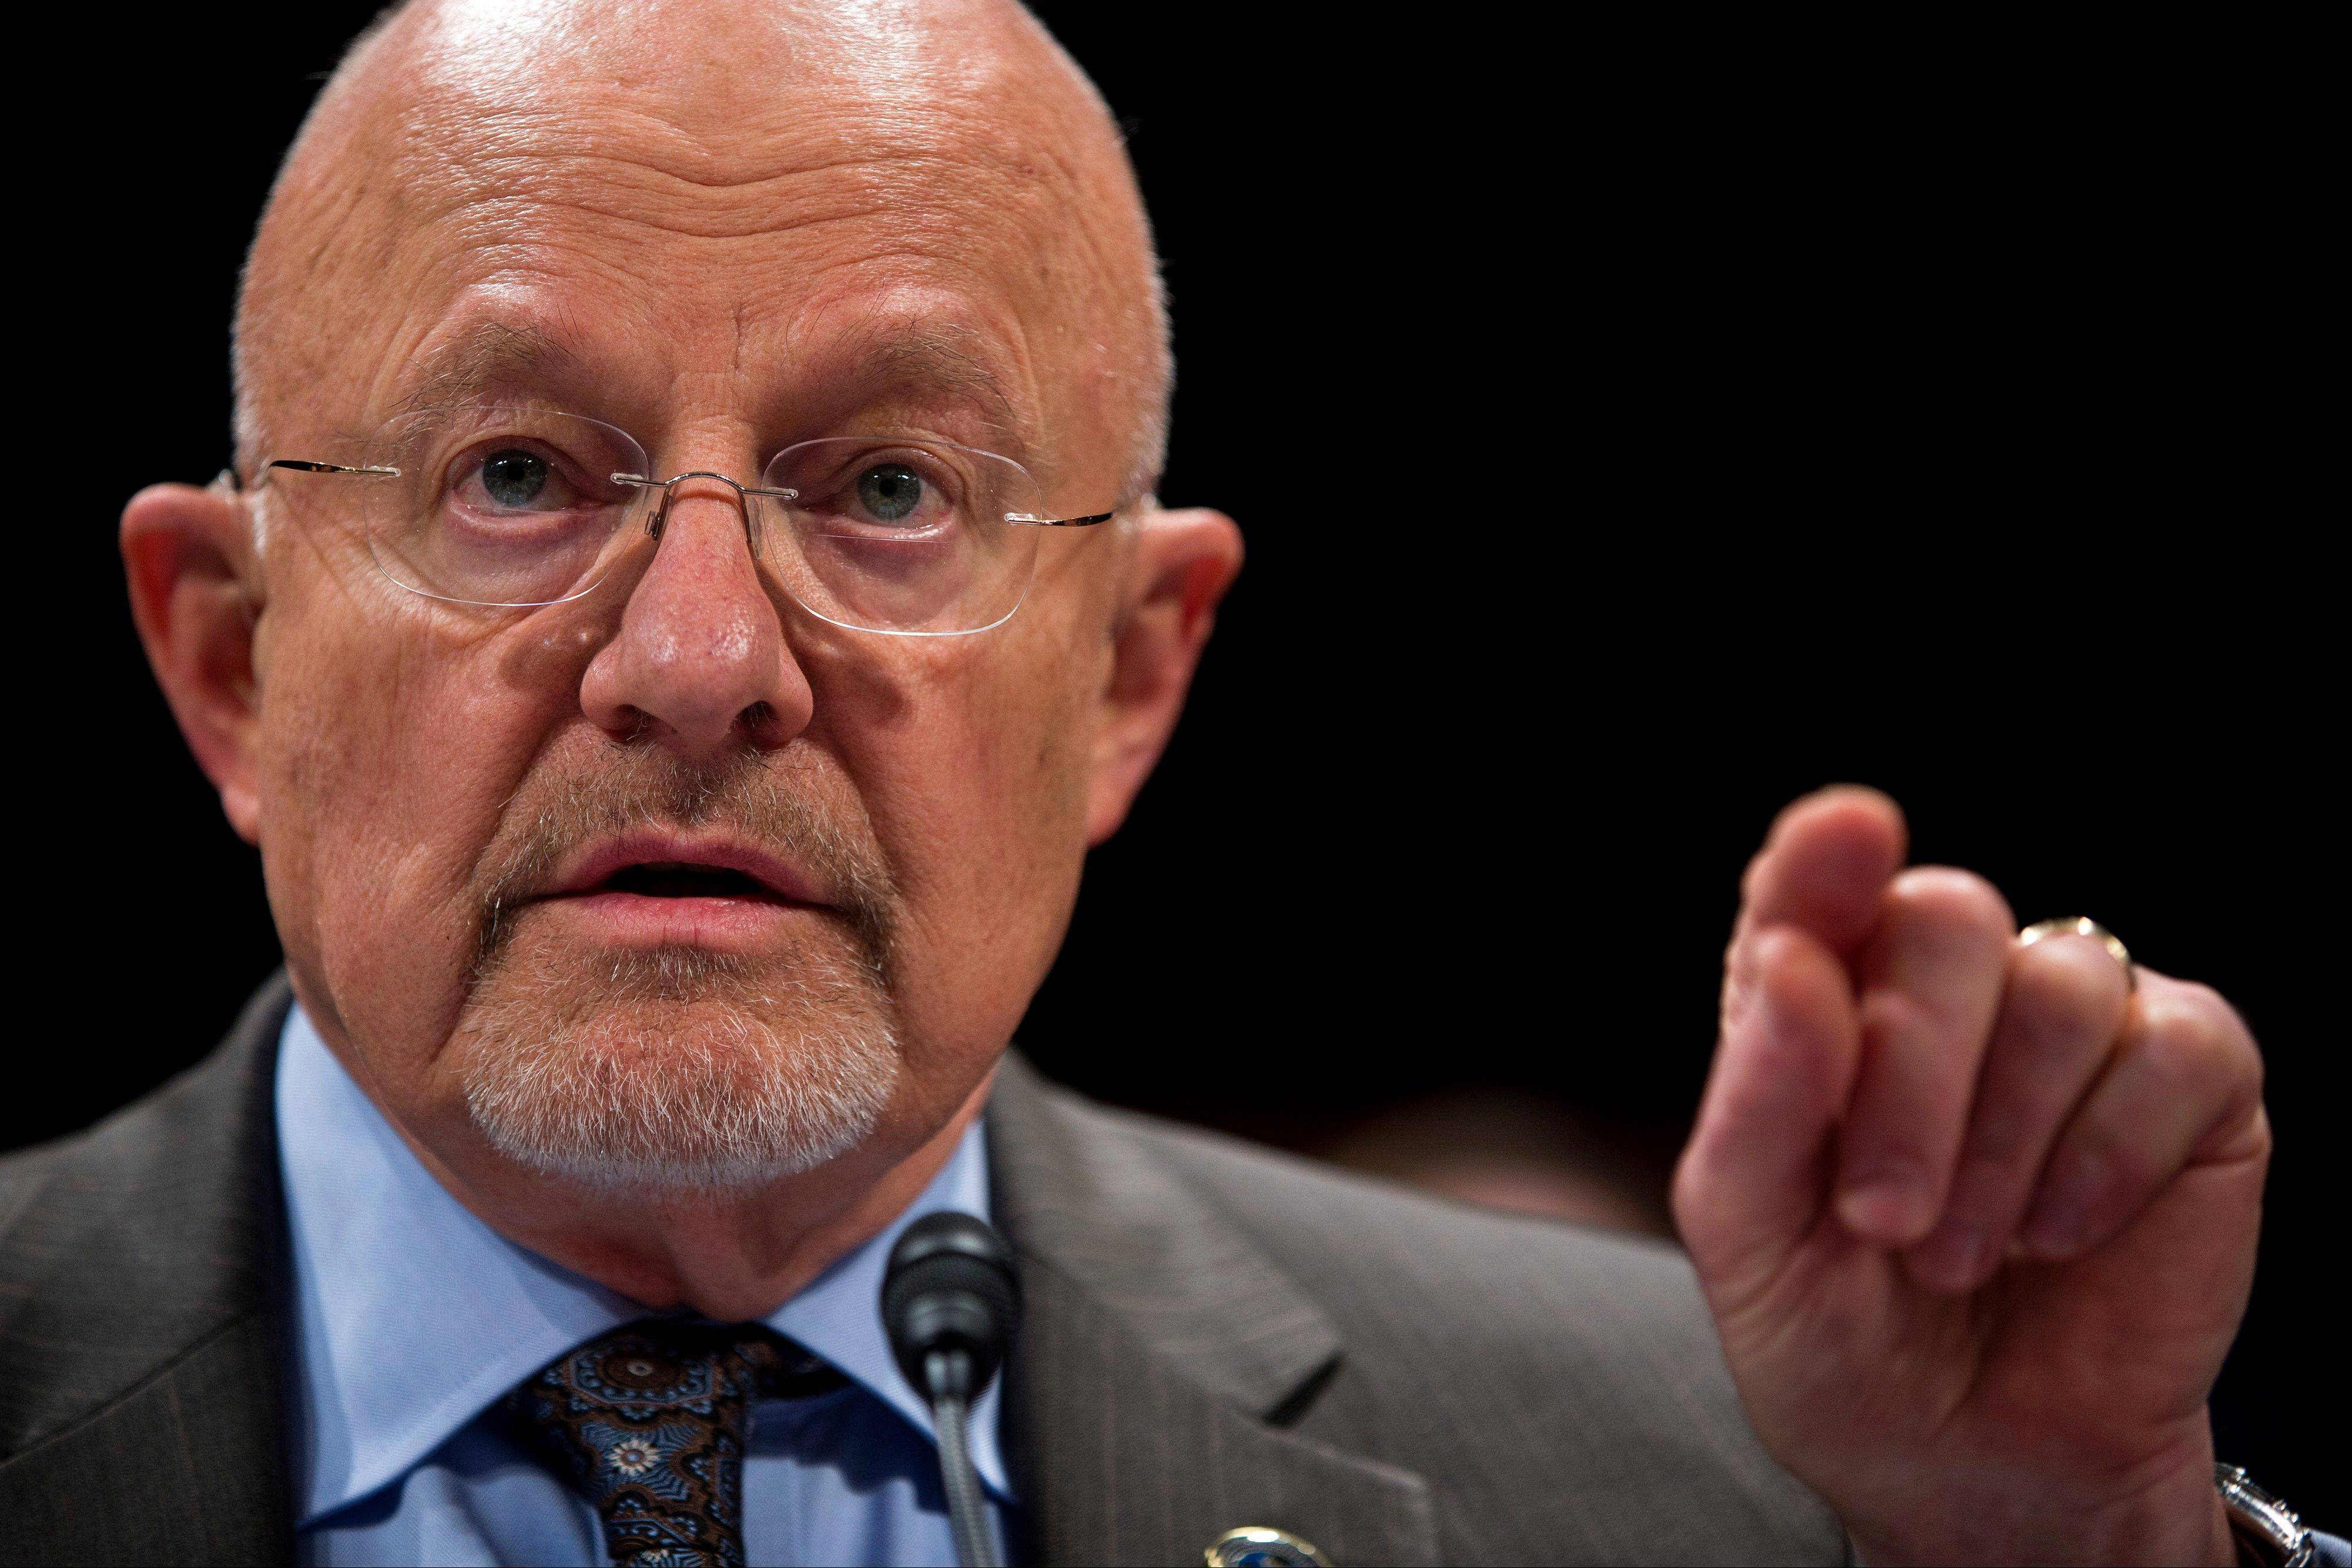 Director of National Intelligence James Clapper testifies on Capitol Hill in Washington.